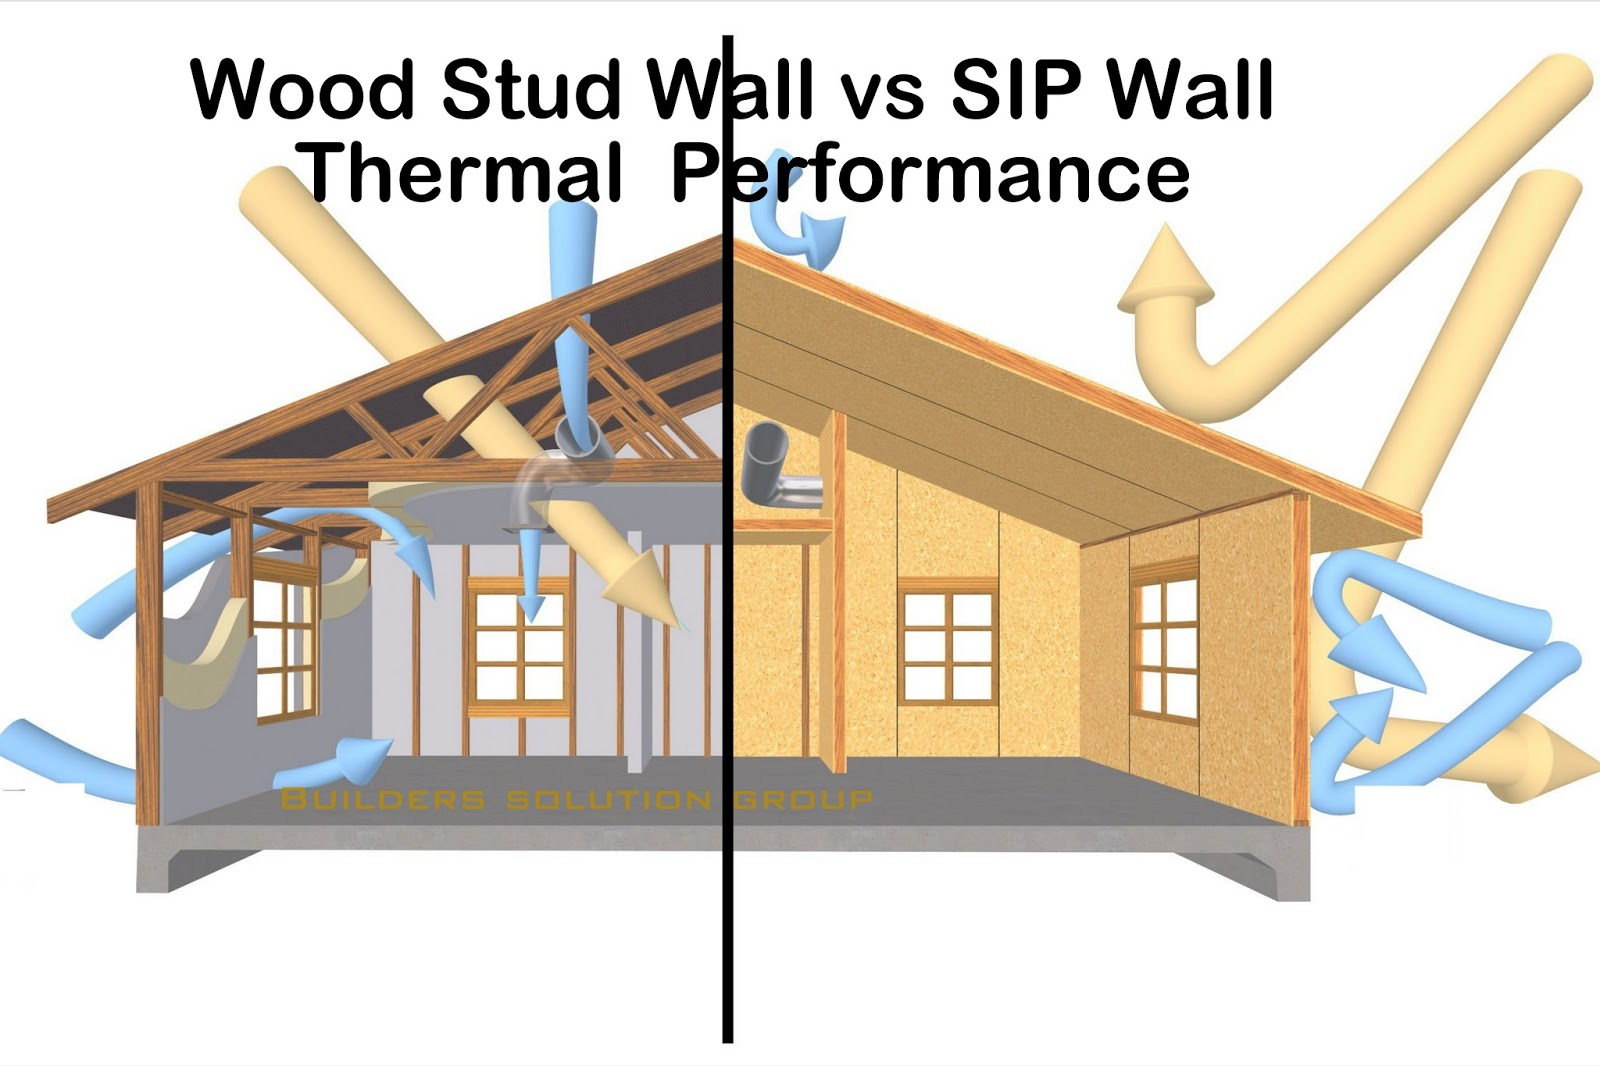 SIP Wall Outperform a Wood Stud Wall Of equal Thickness